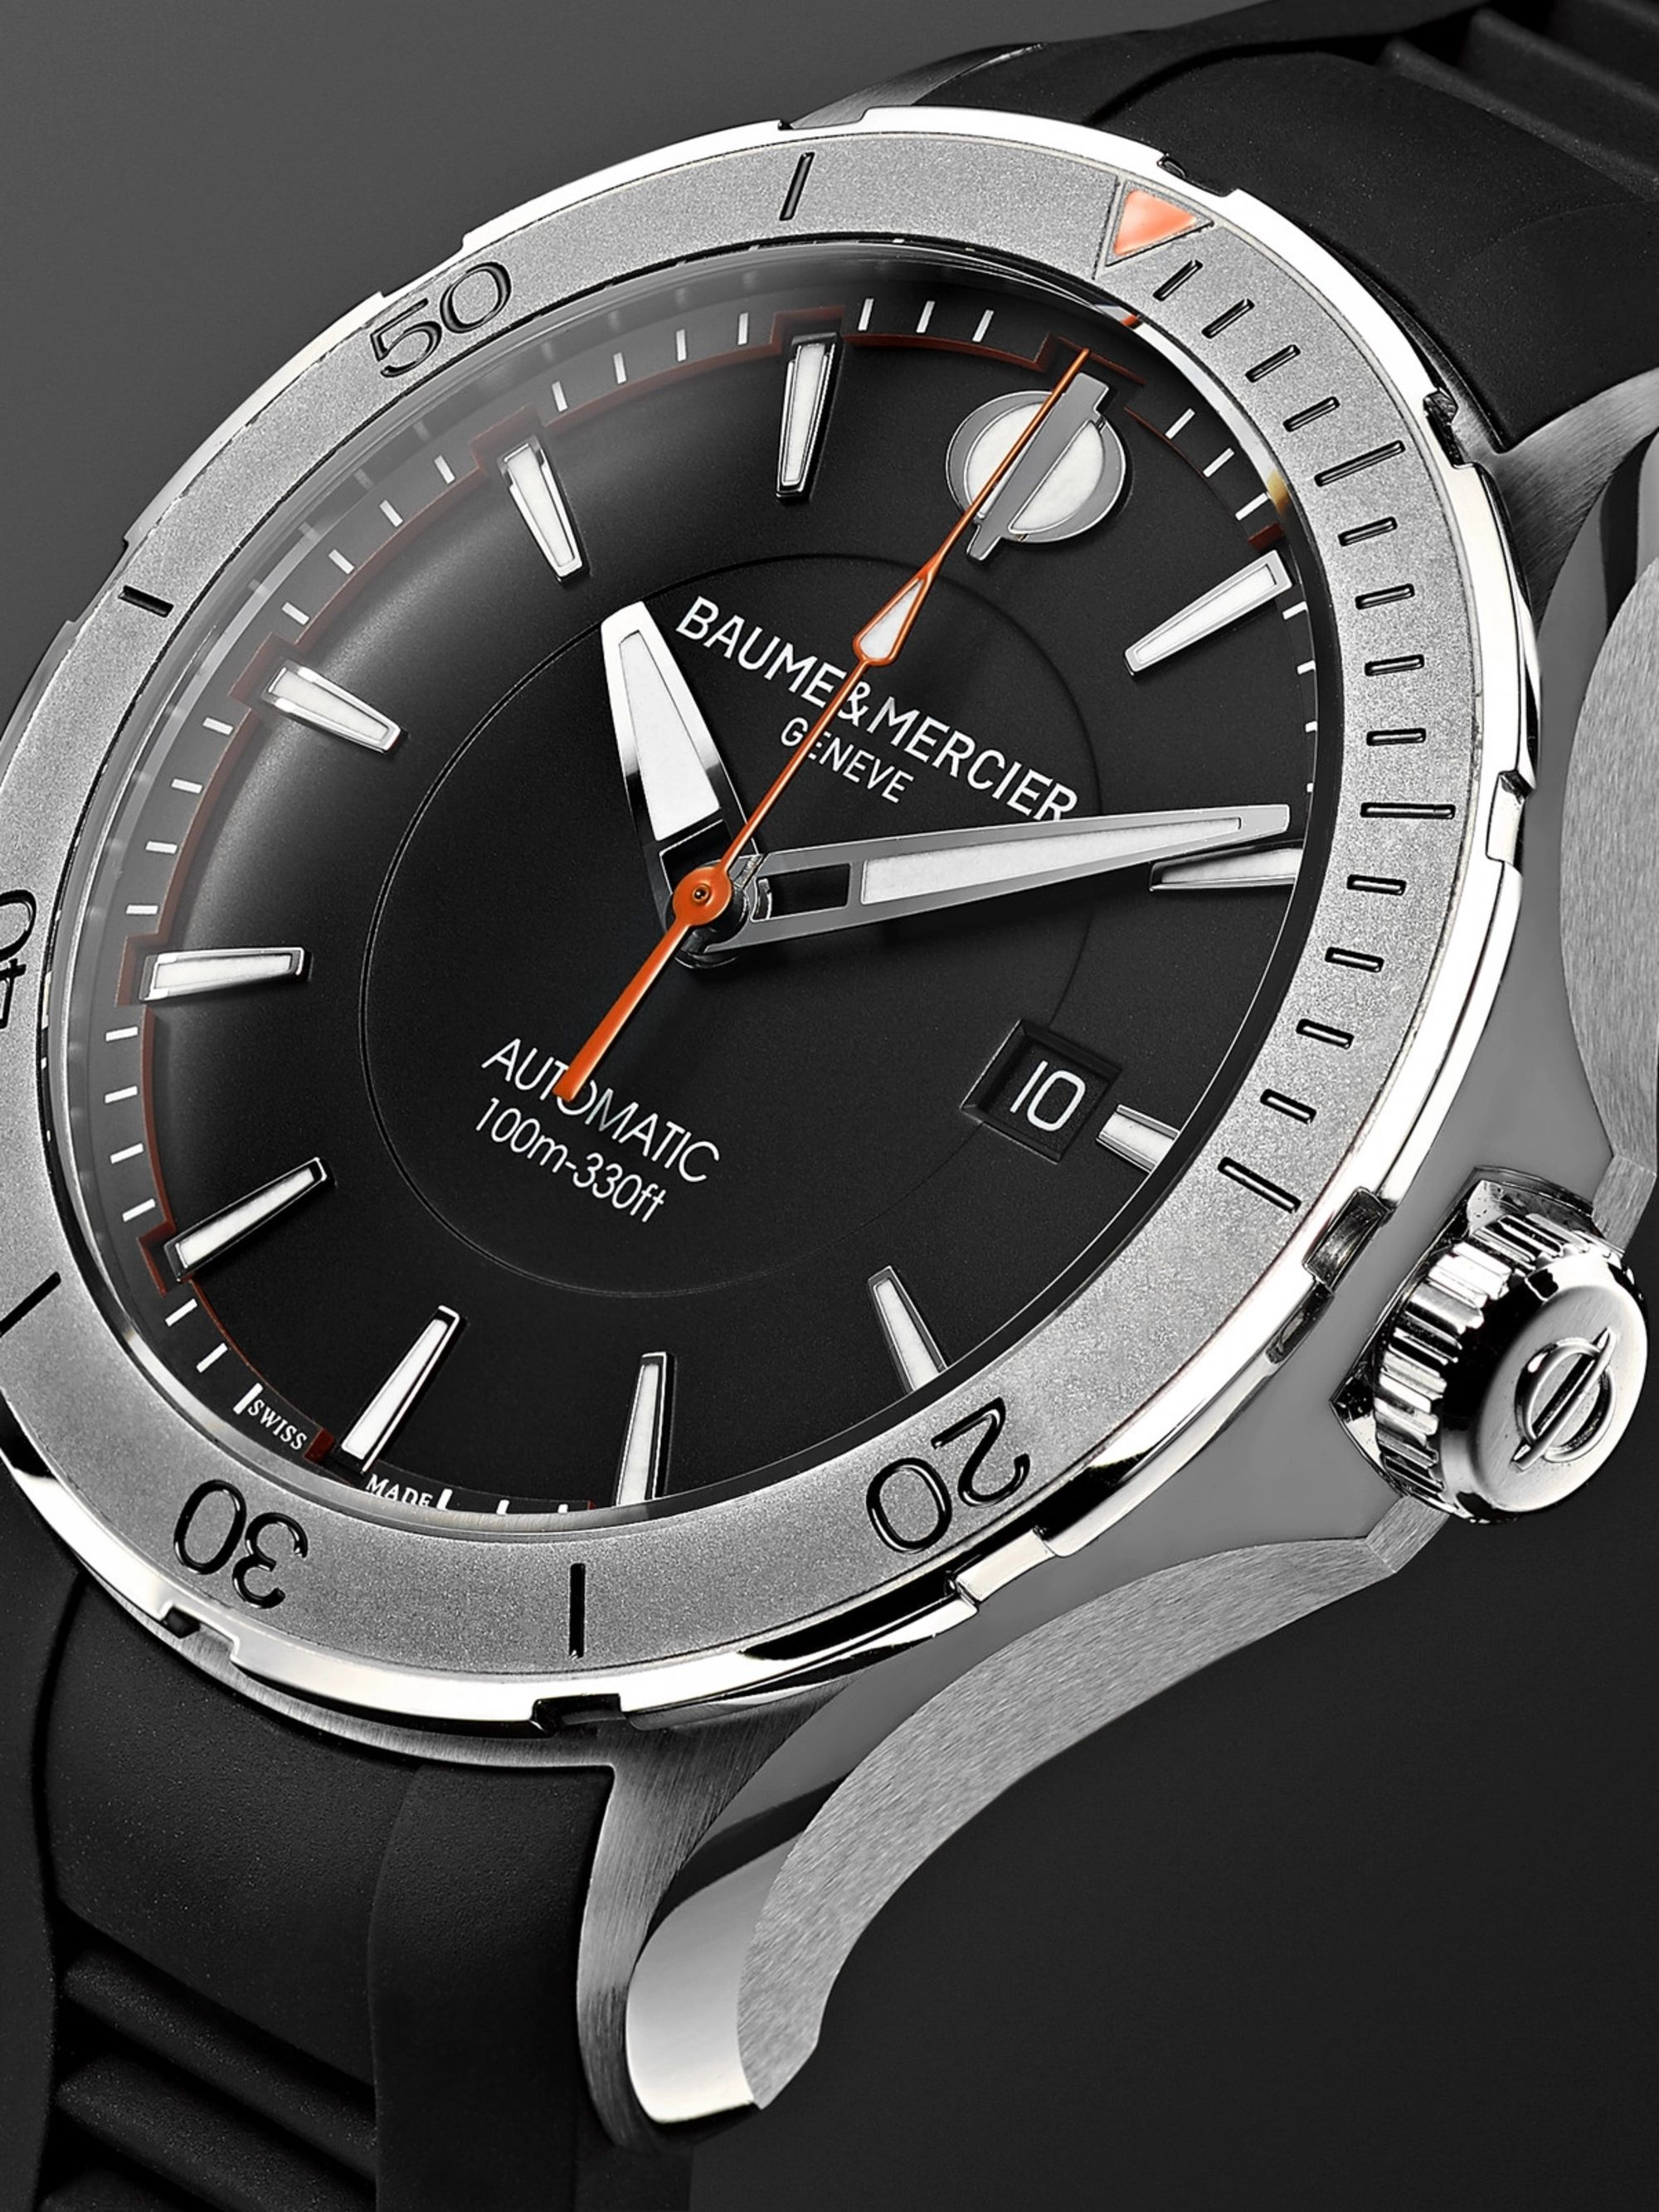 Baume & Mercier Clifton Club Automatic 42mm Stainless Steel and Rubber Watch, Ref. No. 10406